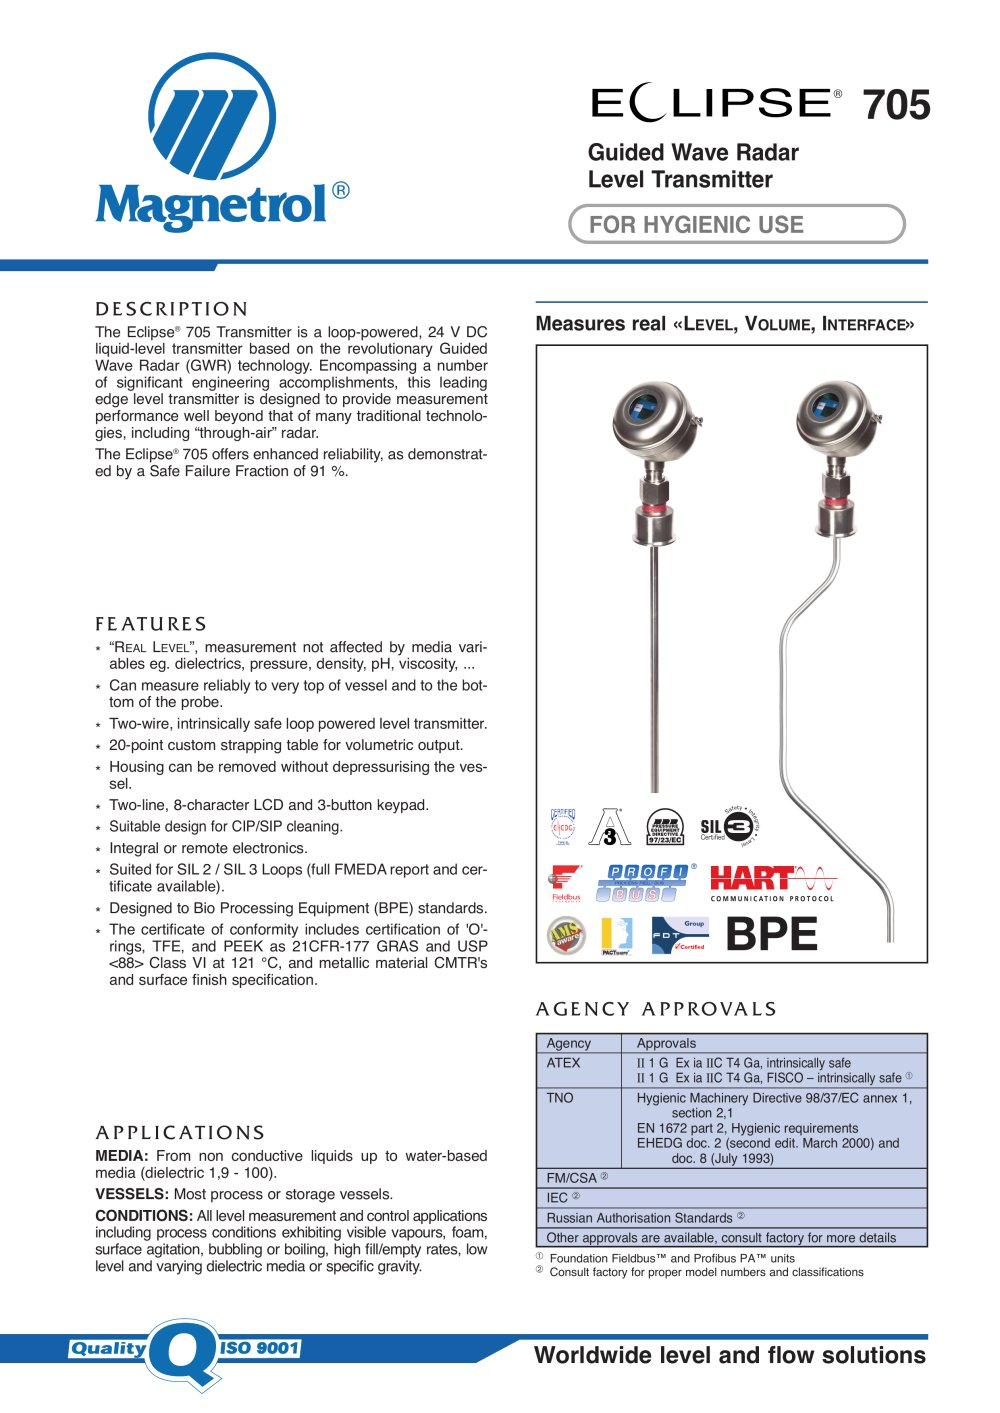 Eclipse Enhanced 705 Hygienic Magnetrol International Pdf 91 Probe Wiring Diagram 1 12 Pages